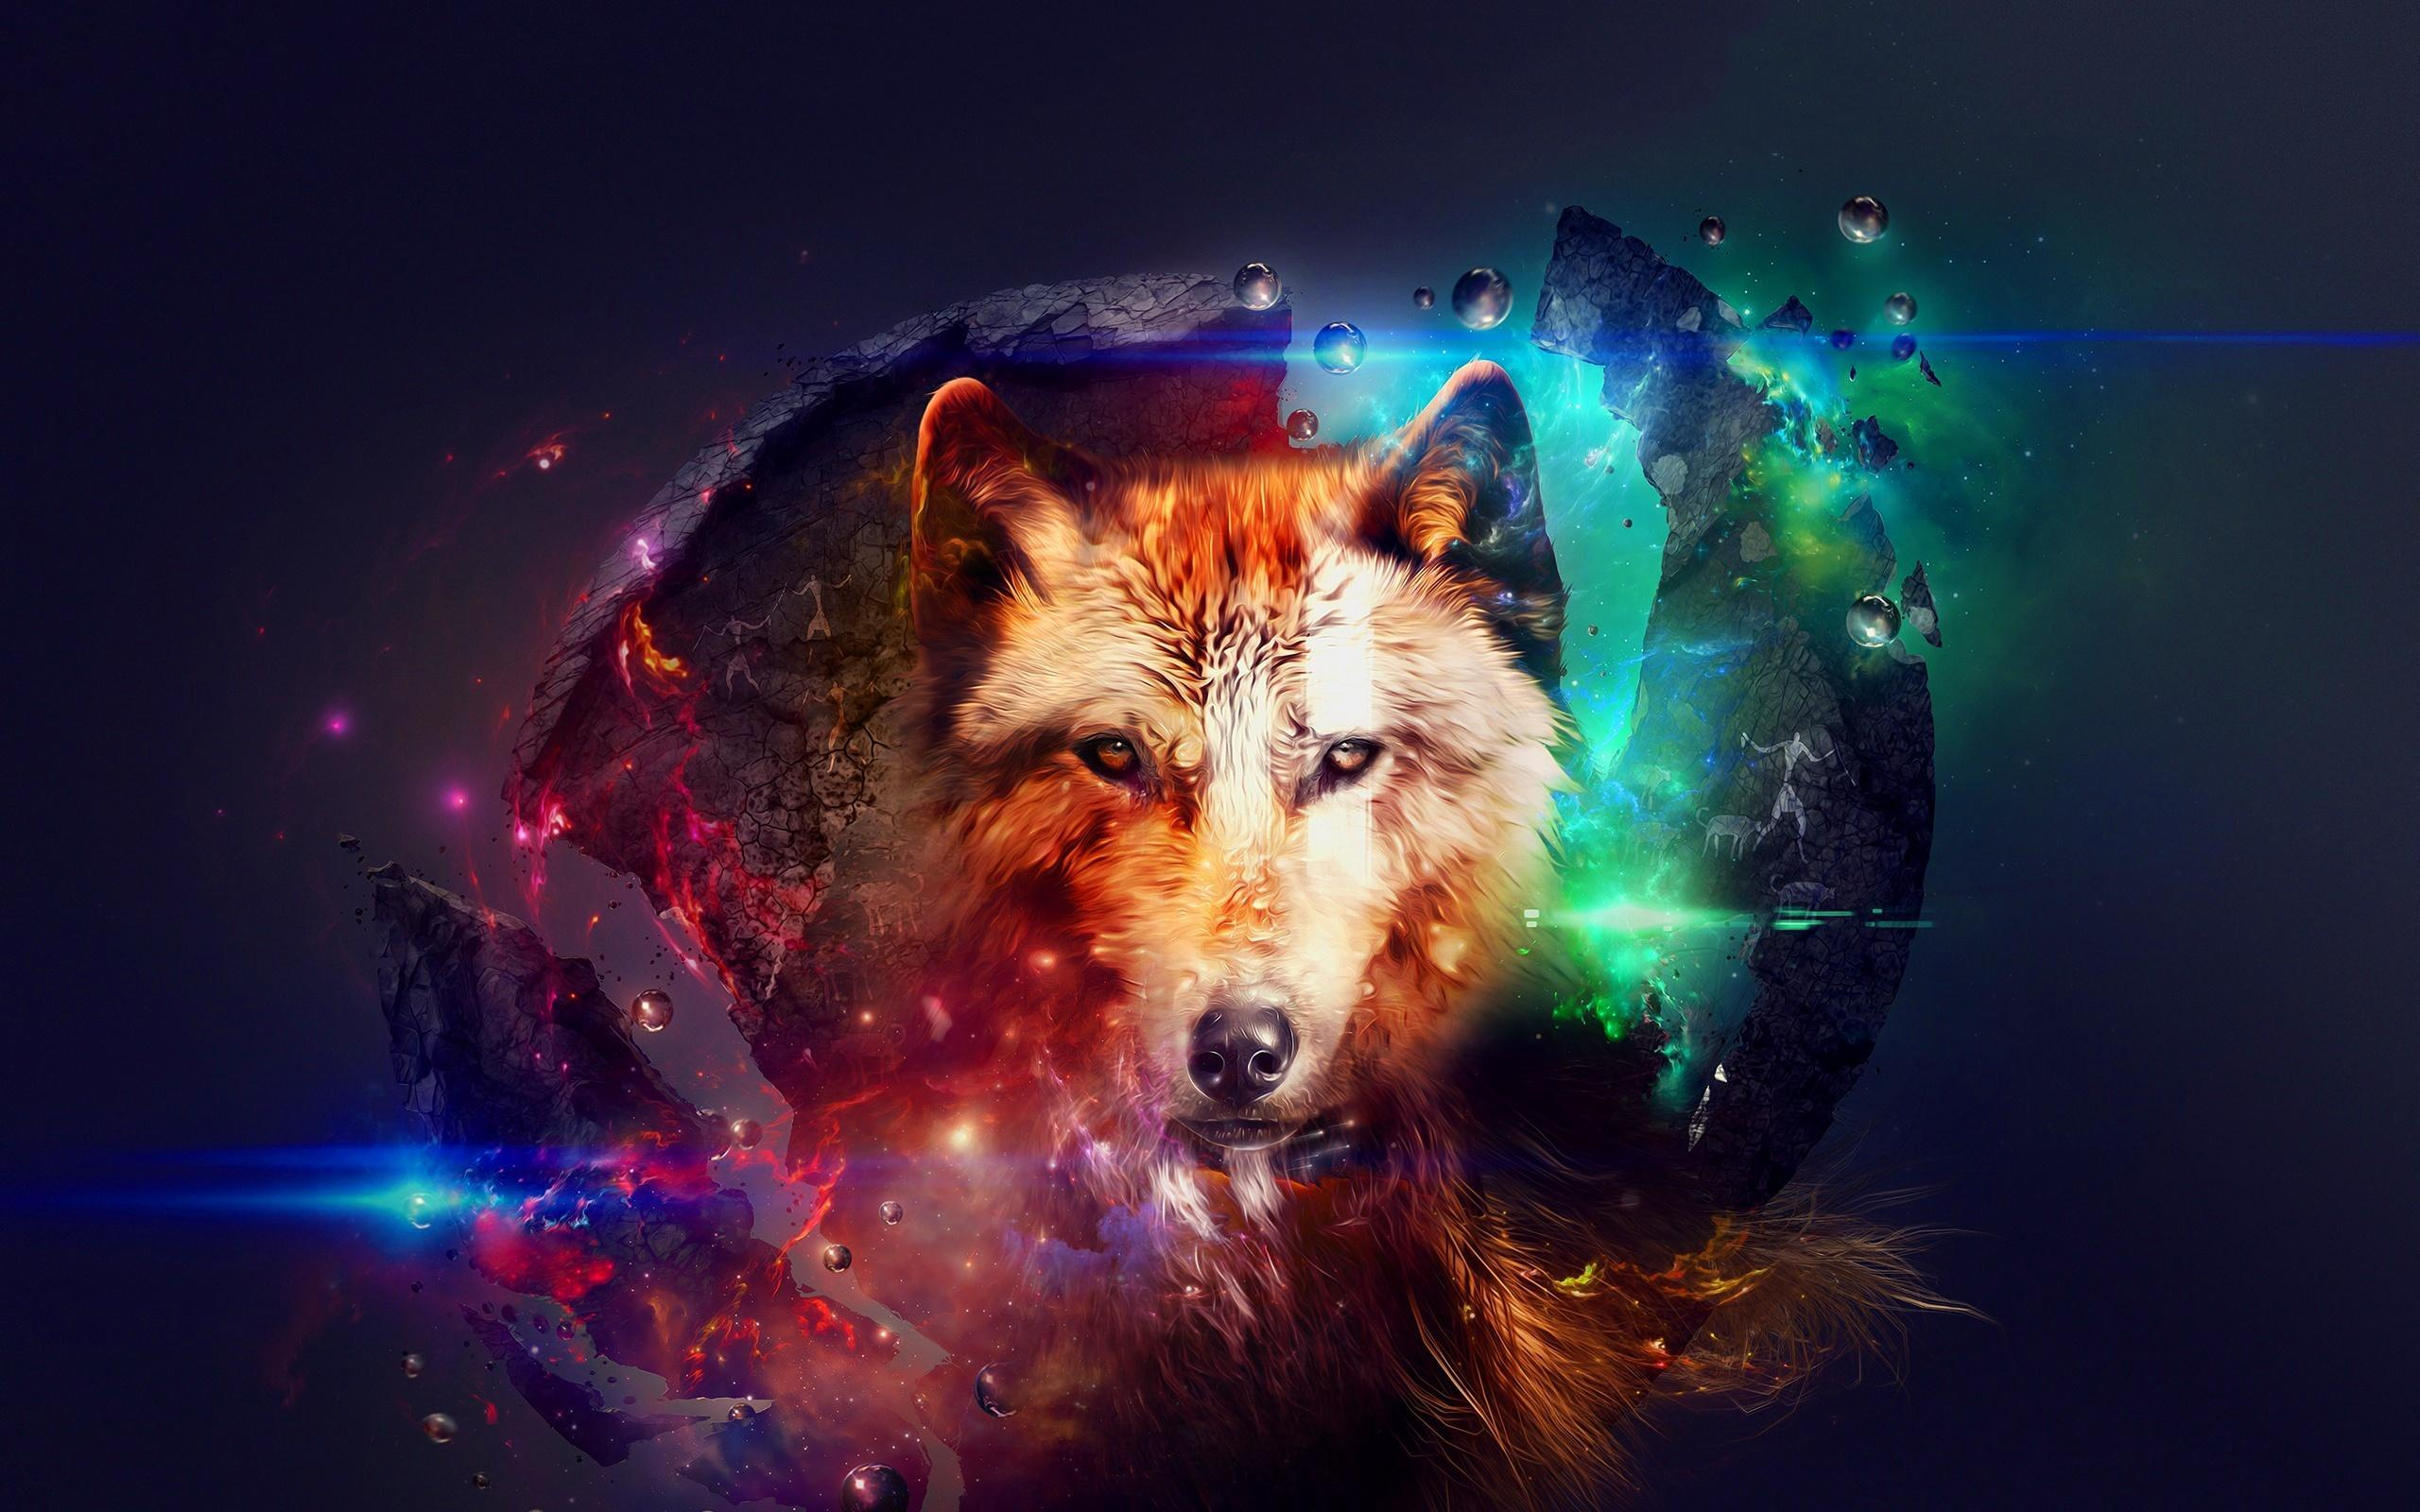 Wolves Wallpaper 2018 Pictures Hd Images Free For Android Apk Download